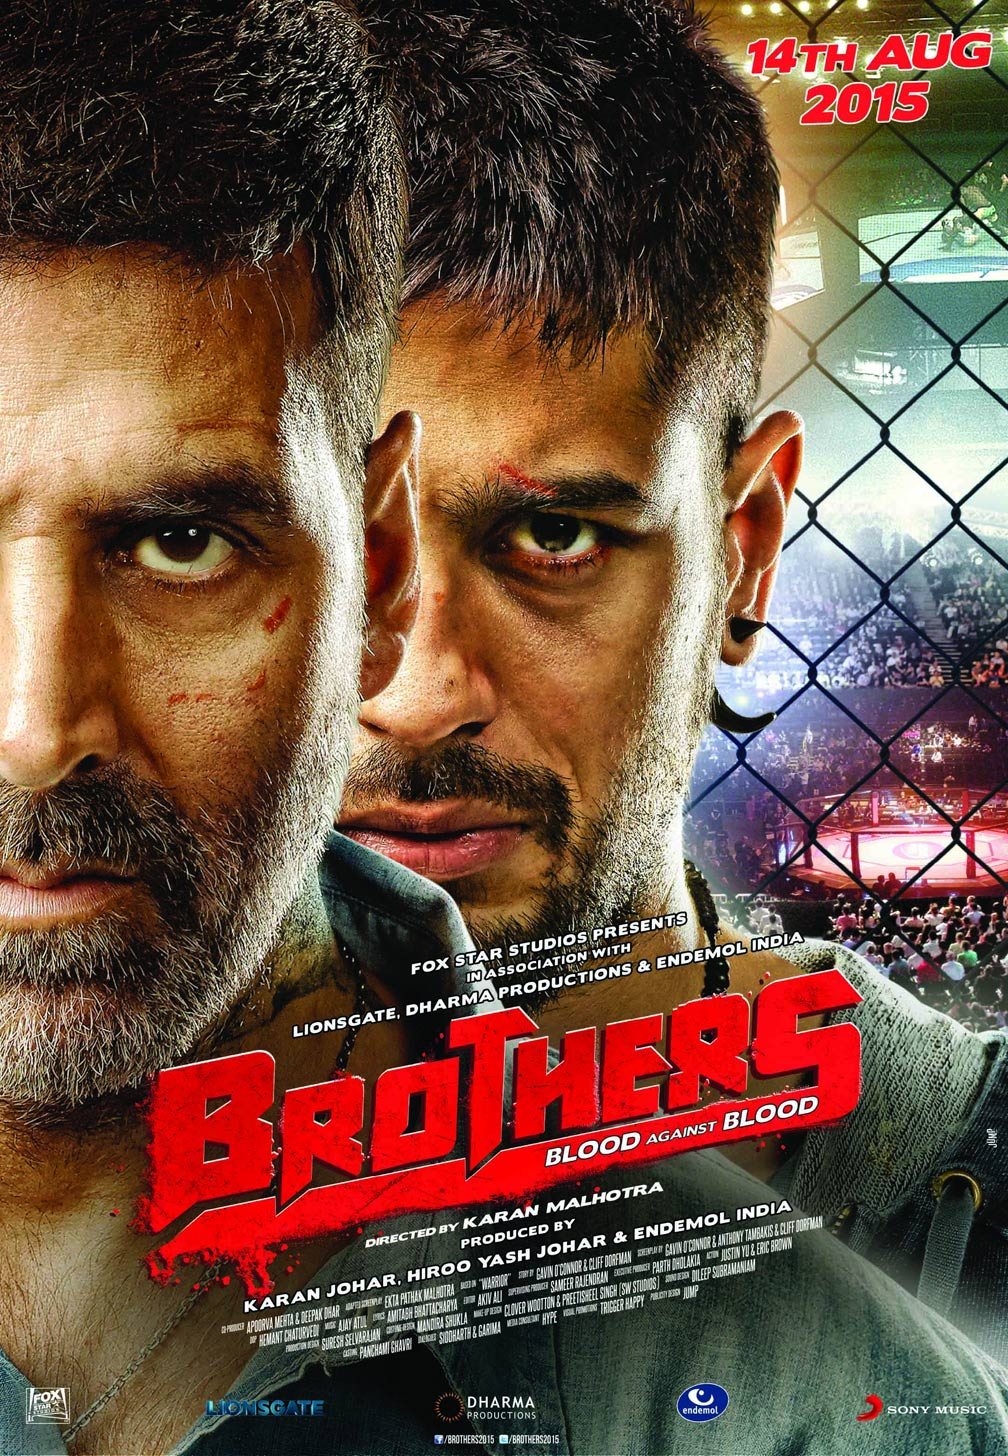 Brothers Movie Poster Ft. Akshay Kumar And Sidharth Malhotra - Full HD Desktop Wallpaper